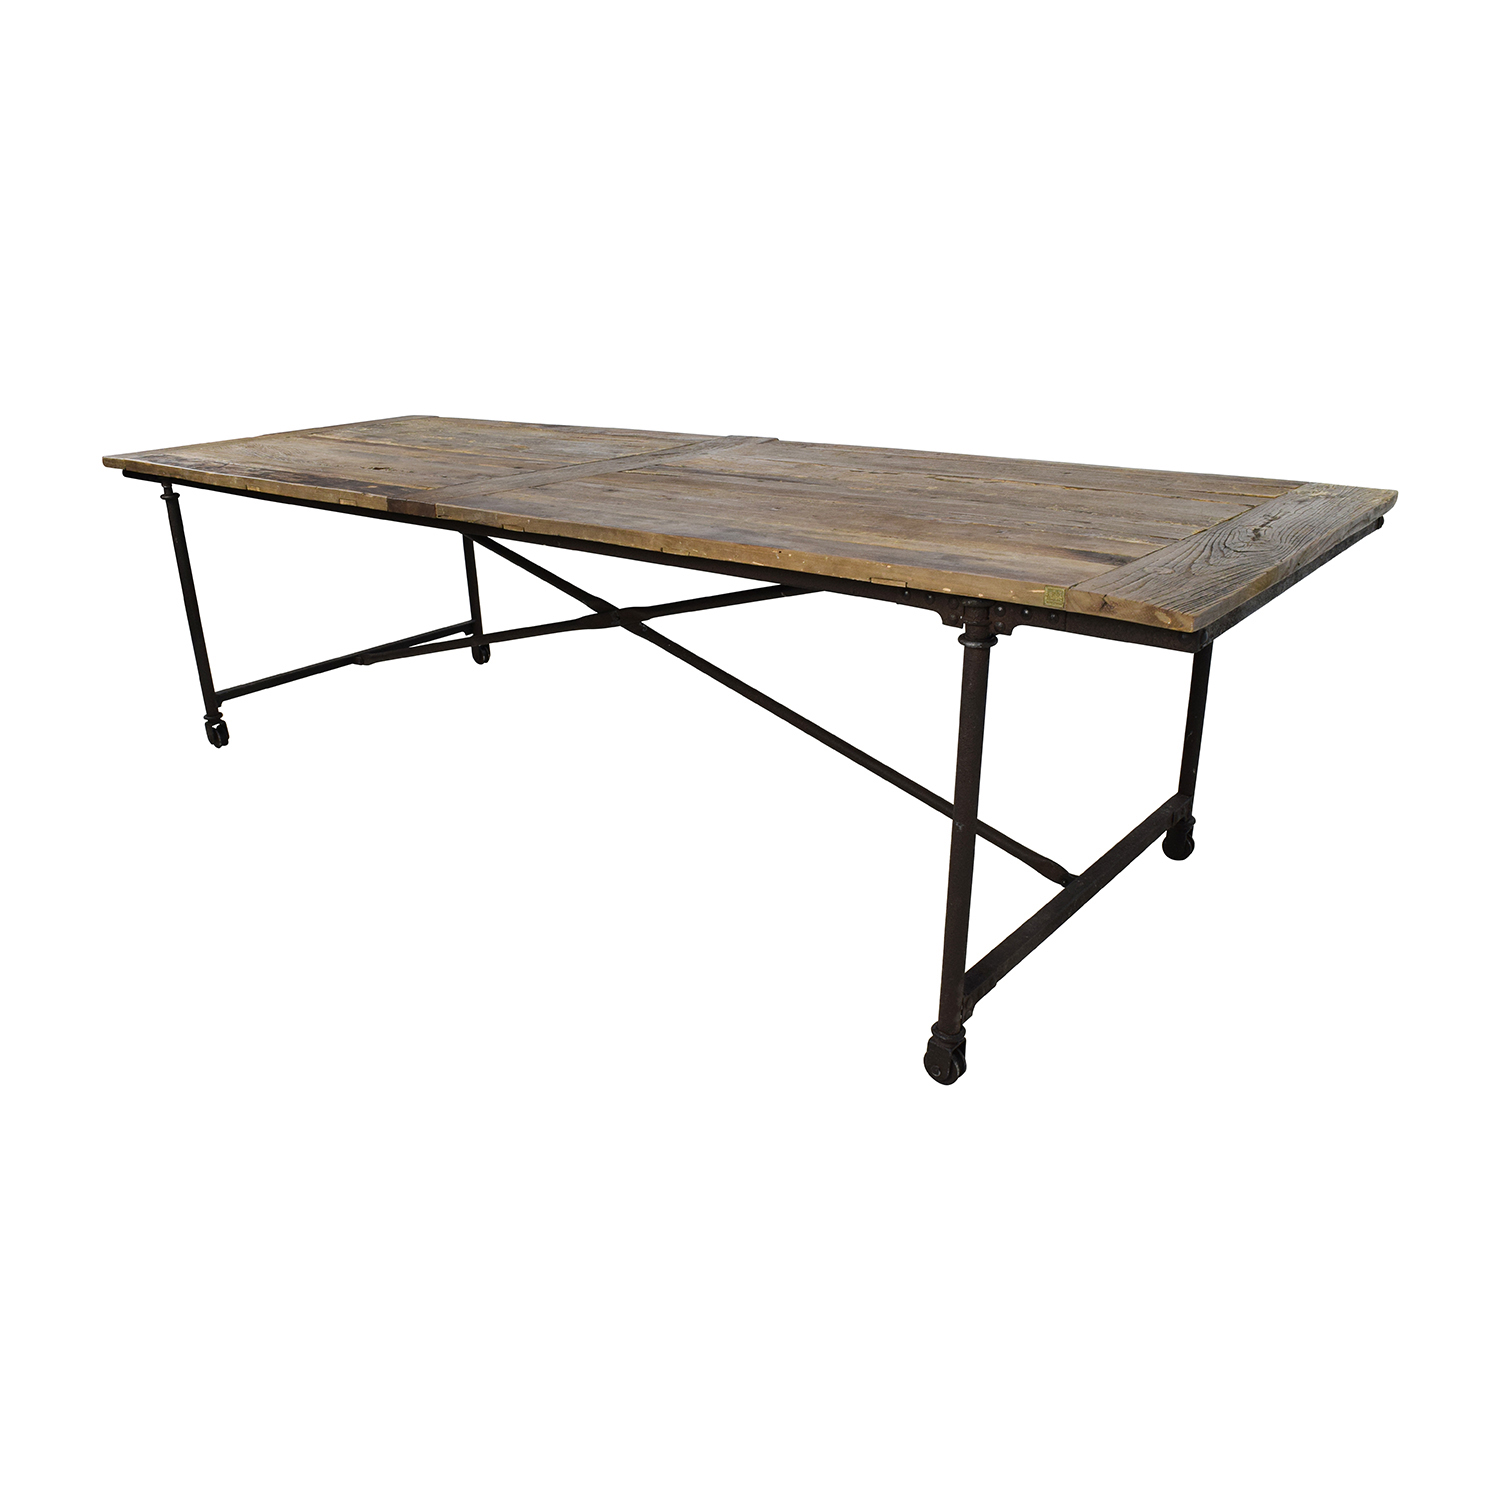 ... Restoration Hardware Restoration Hardware Flat Iron Rectangular Dining  Table Nyc ... Part 57